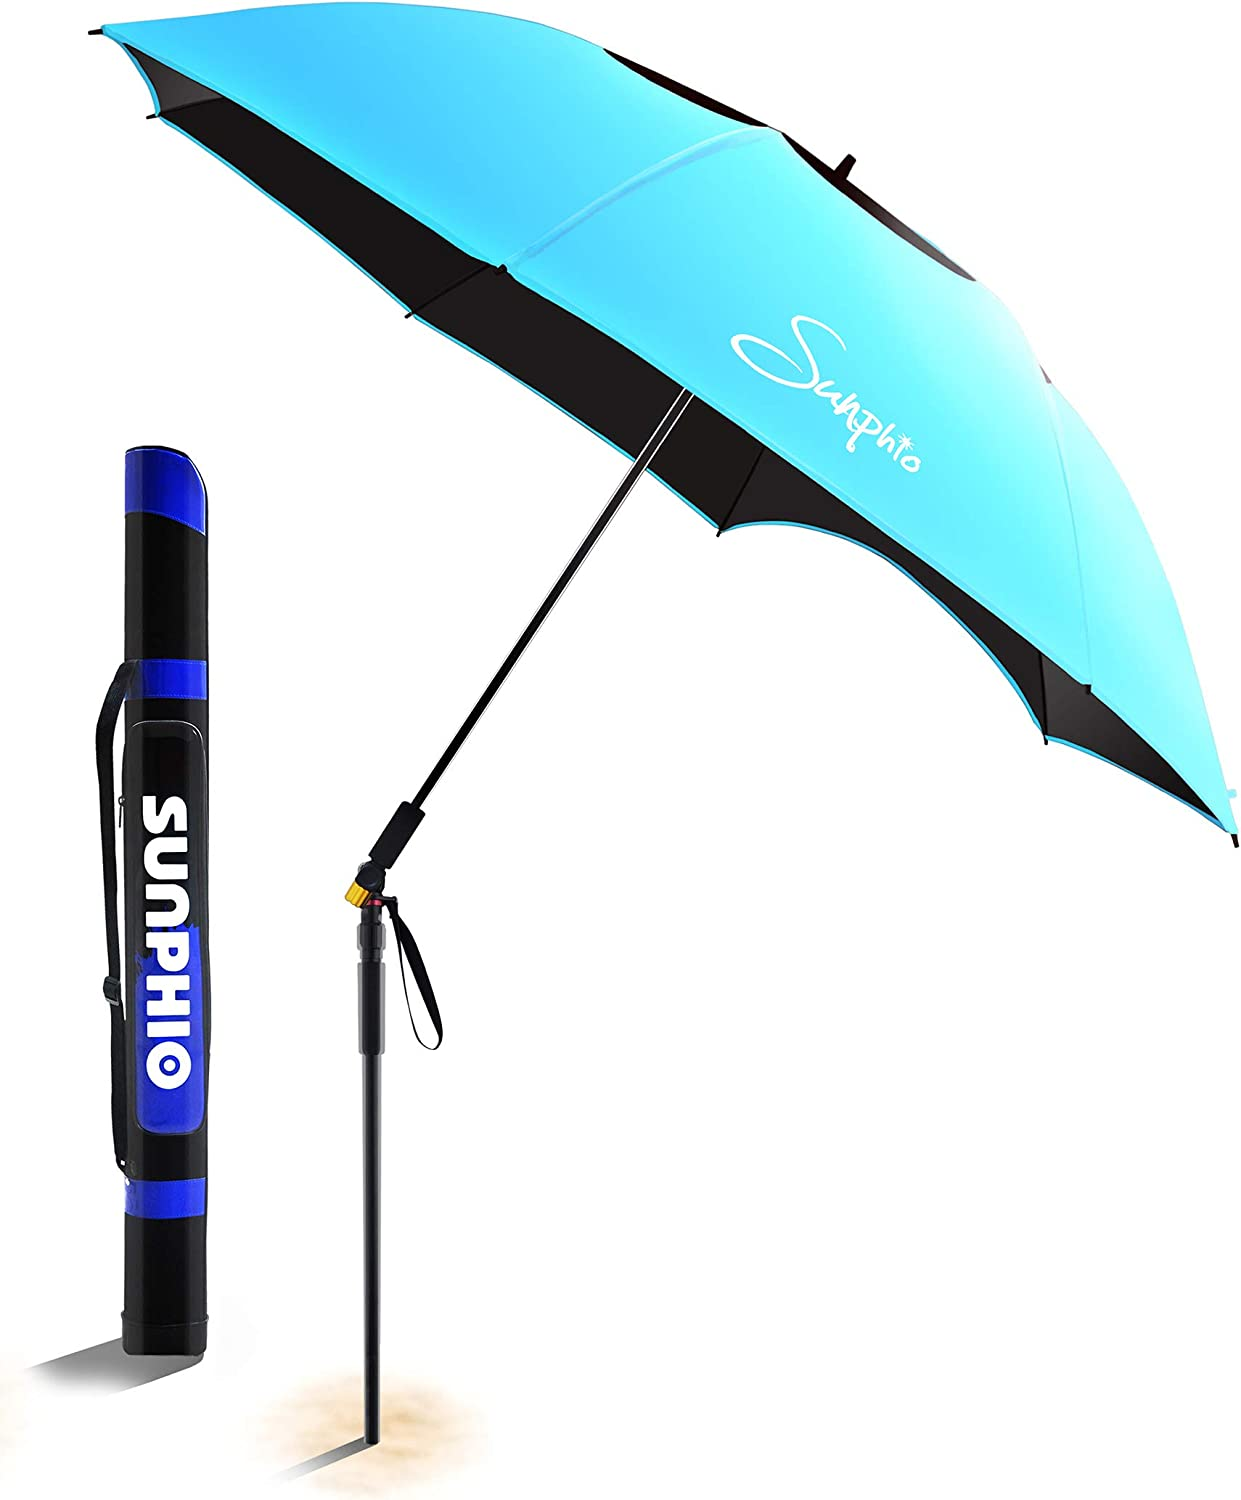 Sunphio Large Windproof Beach Umbrella, Sturdy and UV Protection, Portable Sun Shade Best for Camping, Picnic, Sand, Patio and More, 2 Metal Sand Anchor, 1 Big Carry Bag, 360 Tilt Mechanism Blue